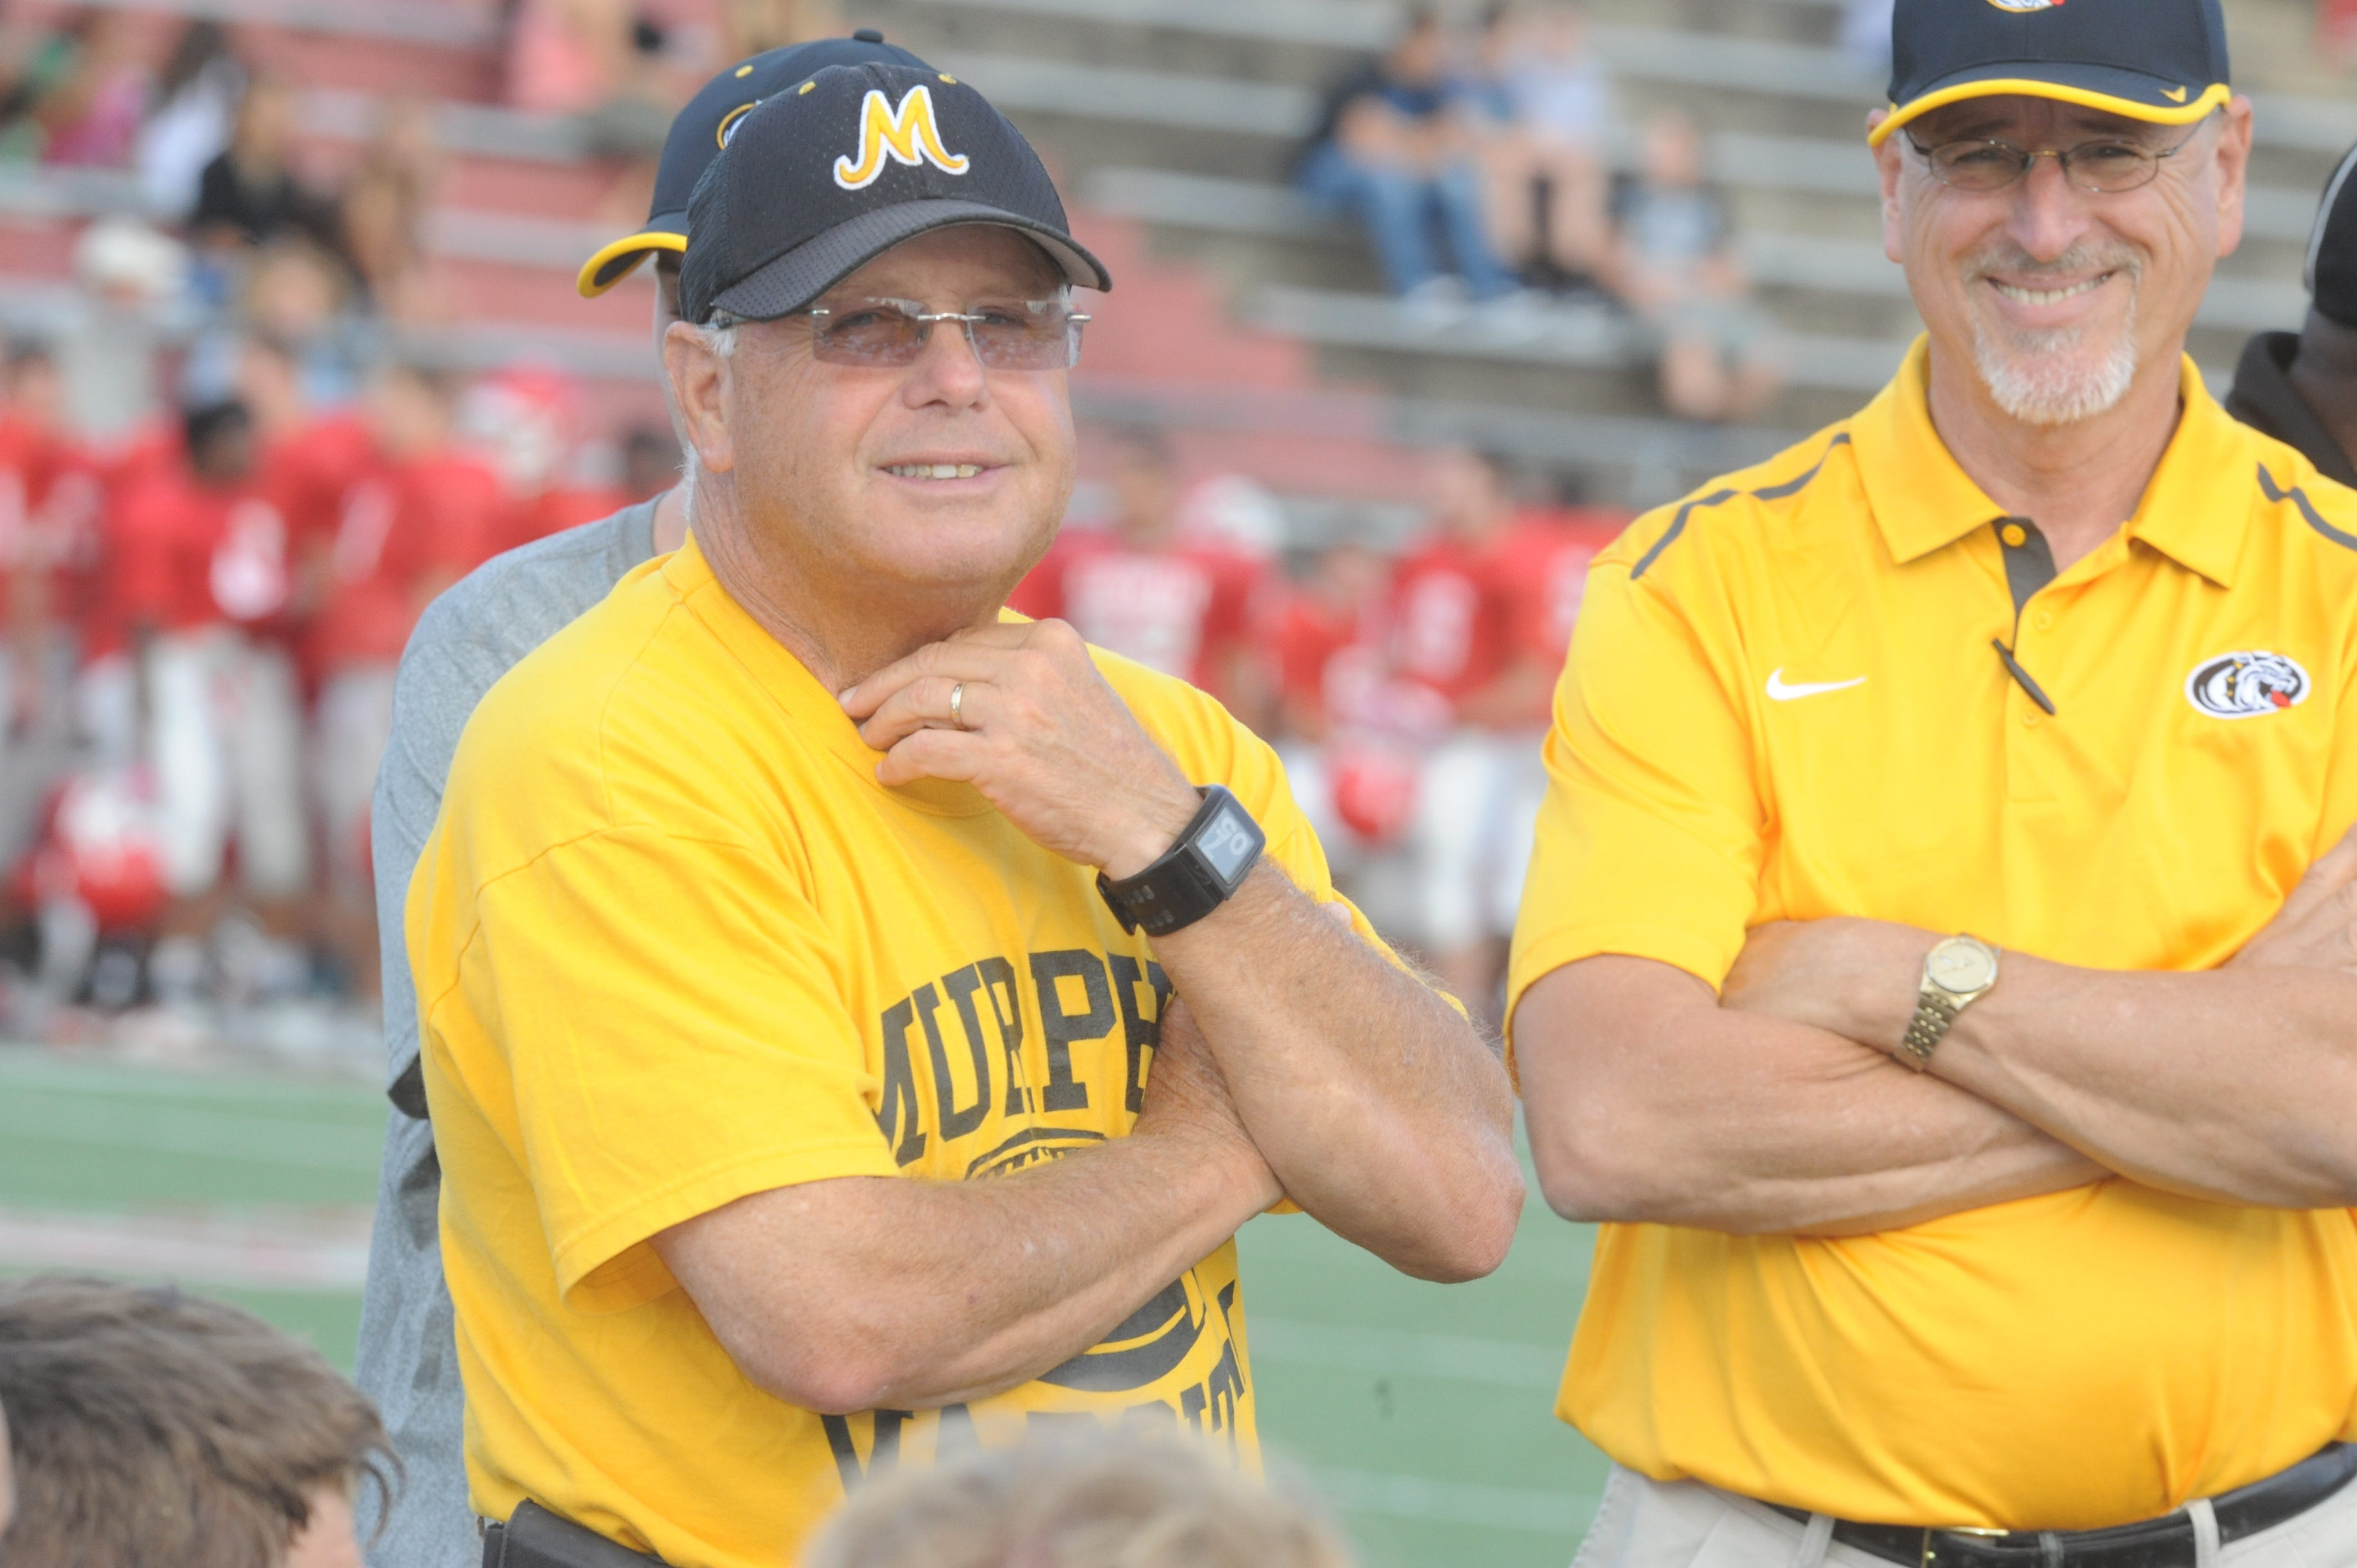 David Gentry, left, has been the football coach at Murphy since 1983 and won a Western North Carolina-record 346 games.